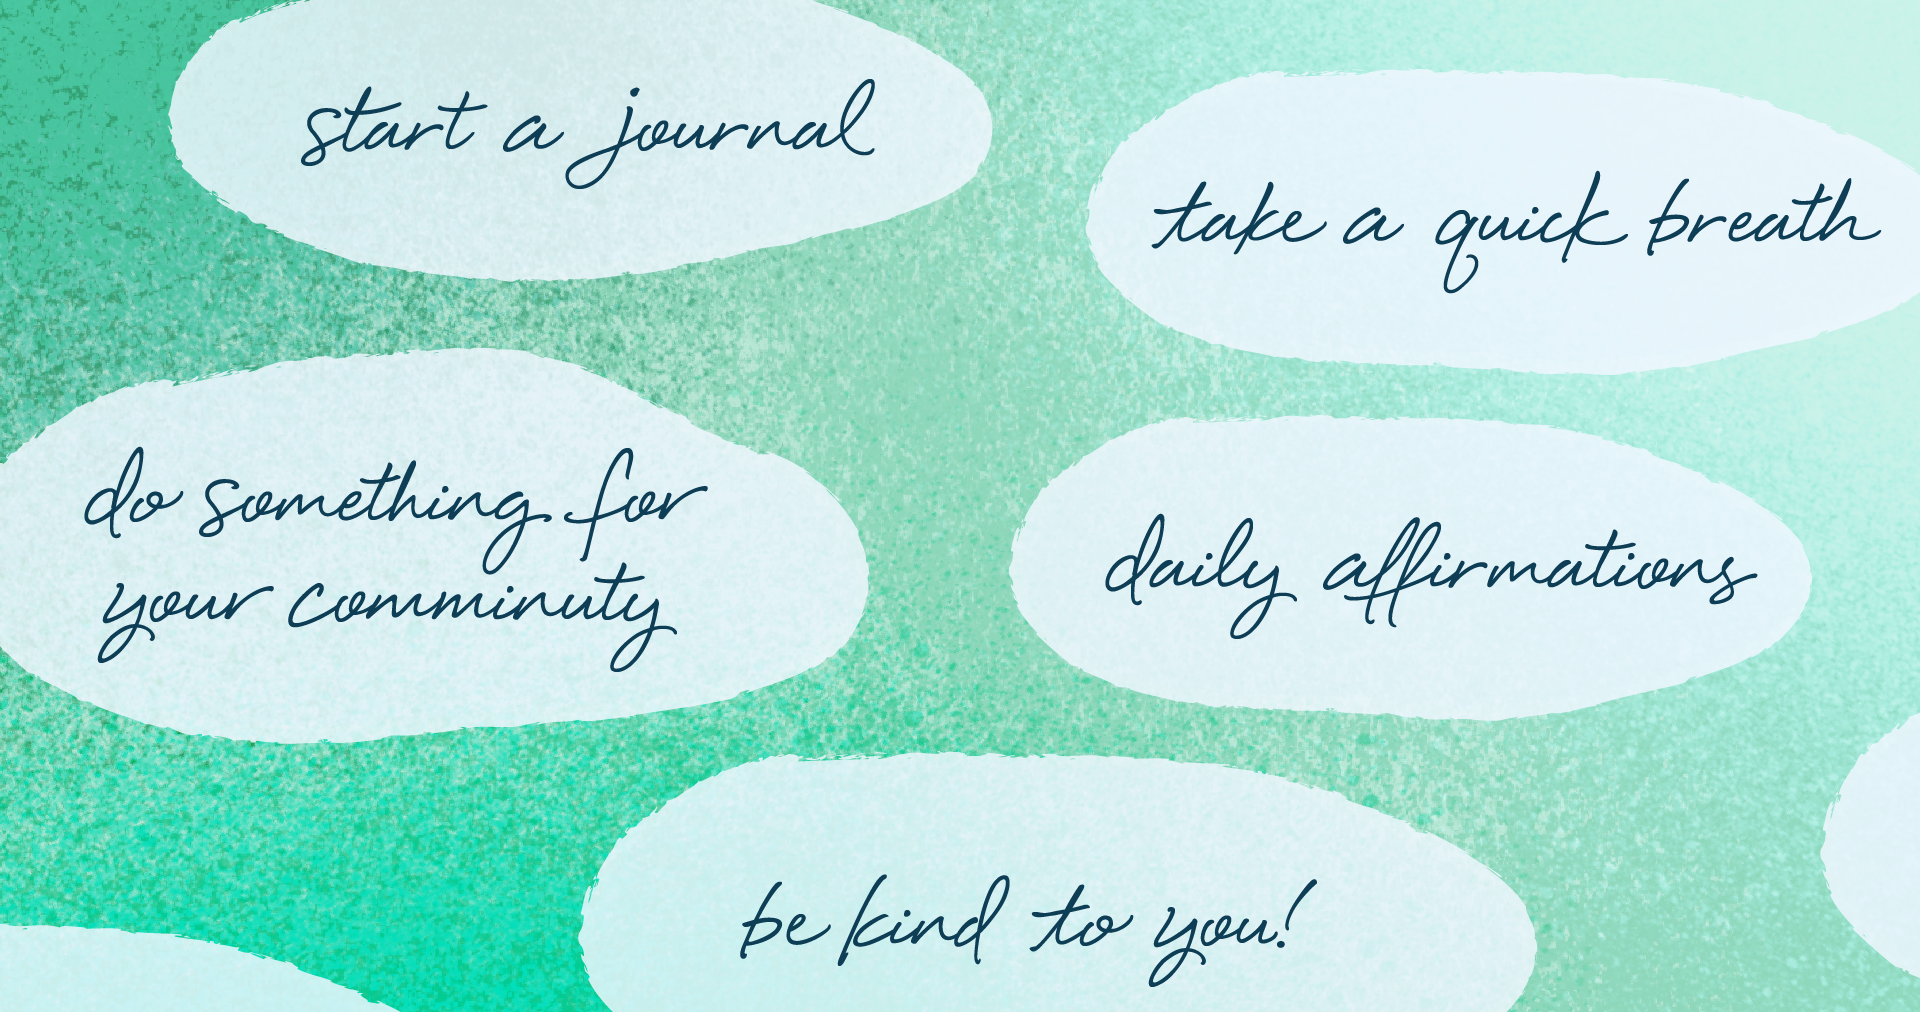 thought bubbles that say: start a journal, take a quick breath, do something for your community, daily affirmations, and be kind to you